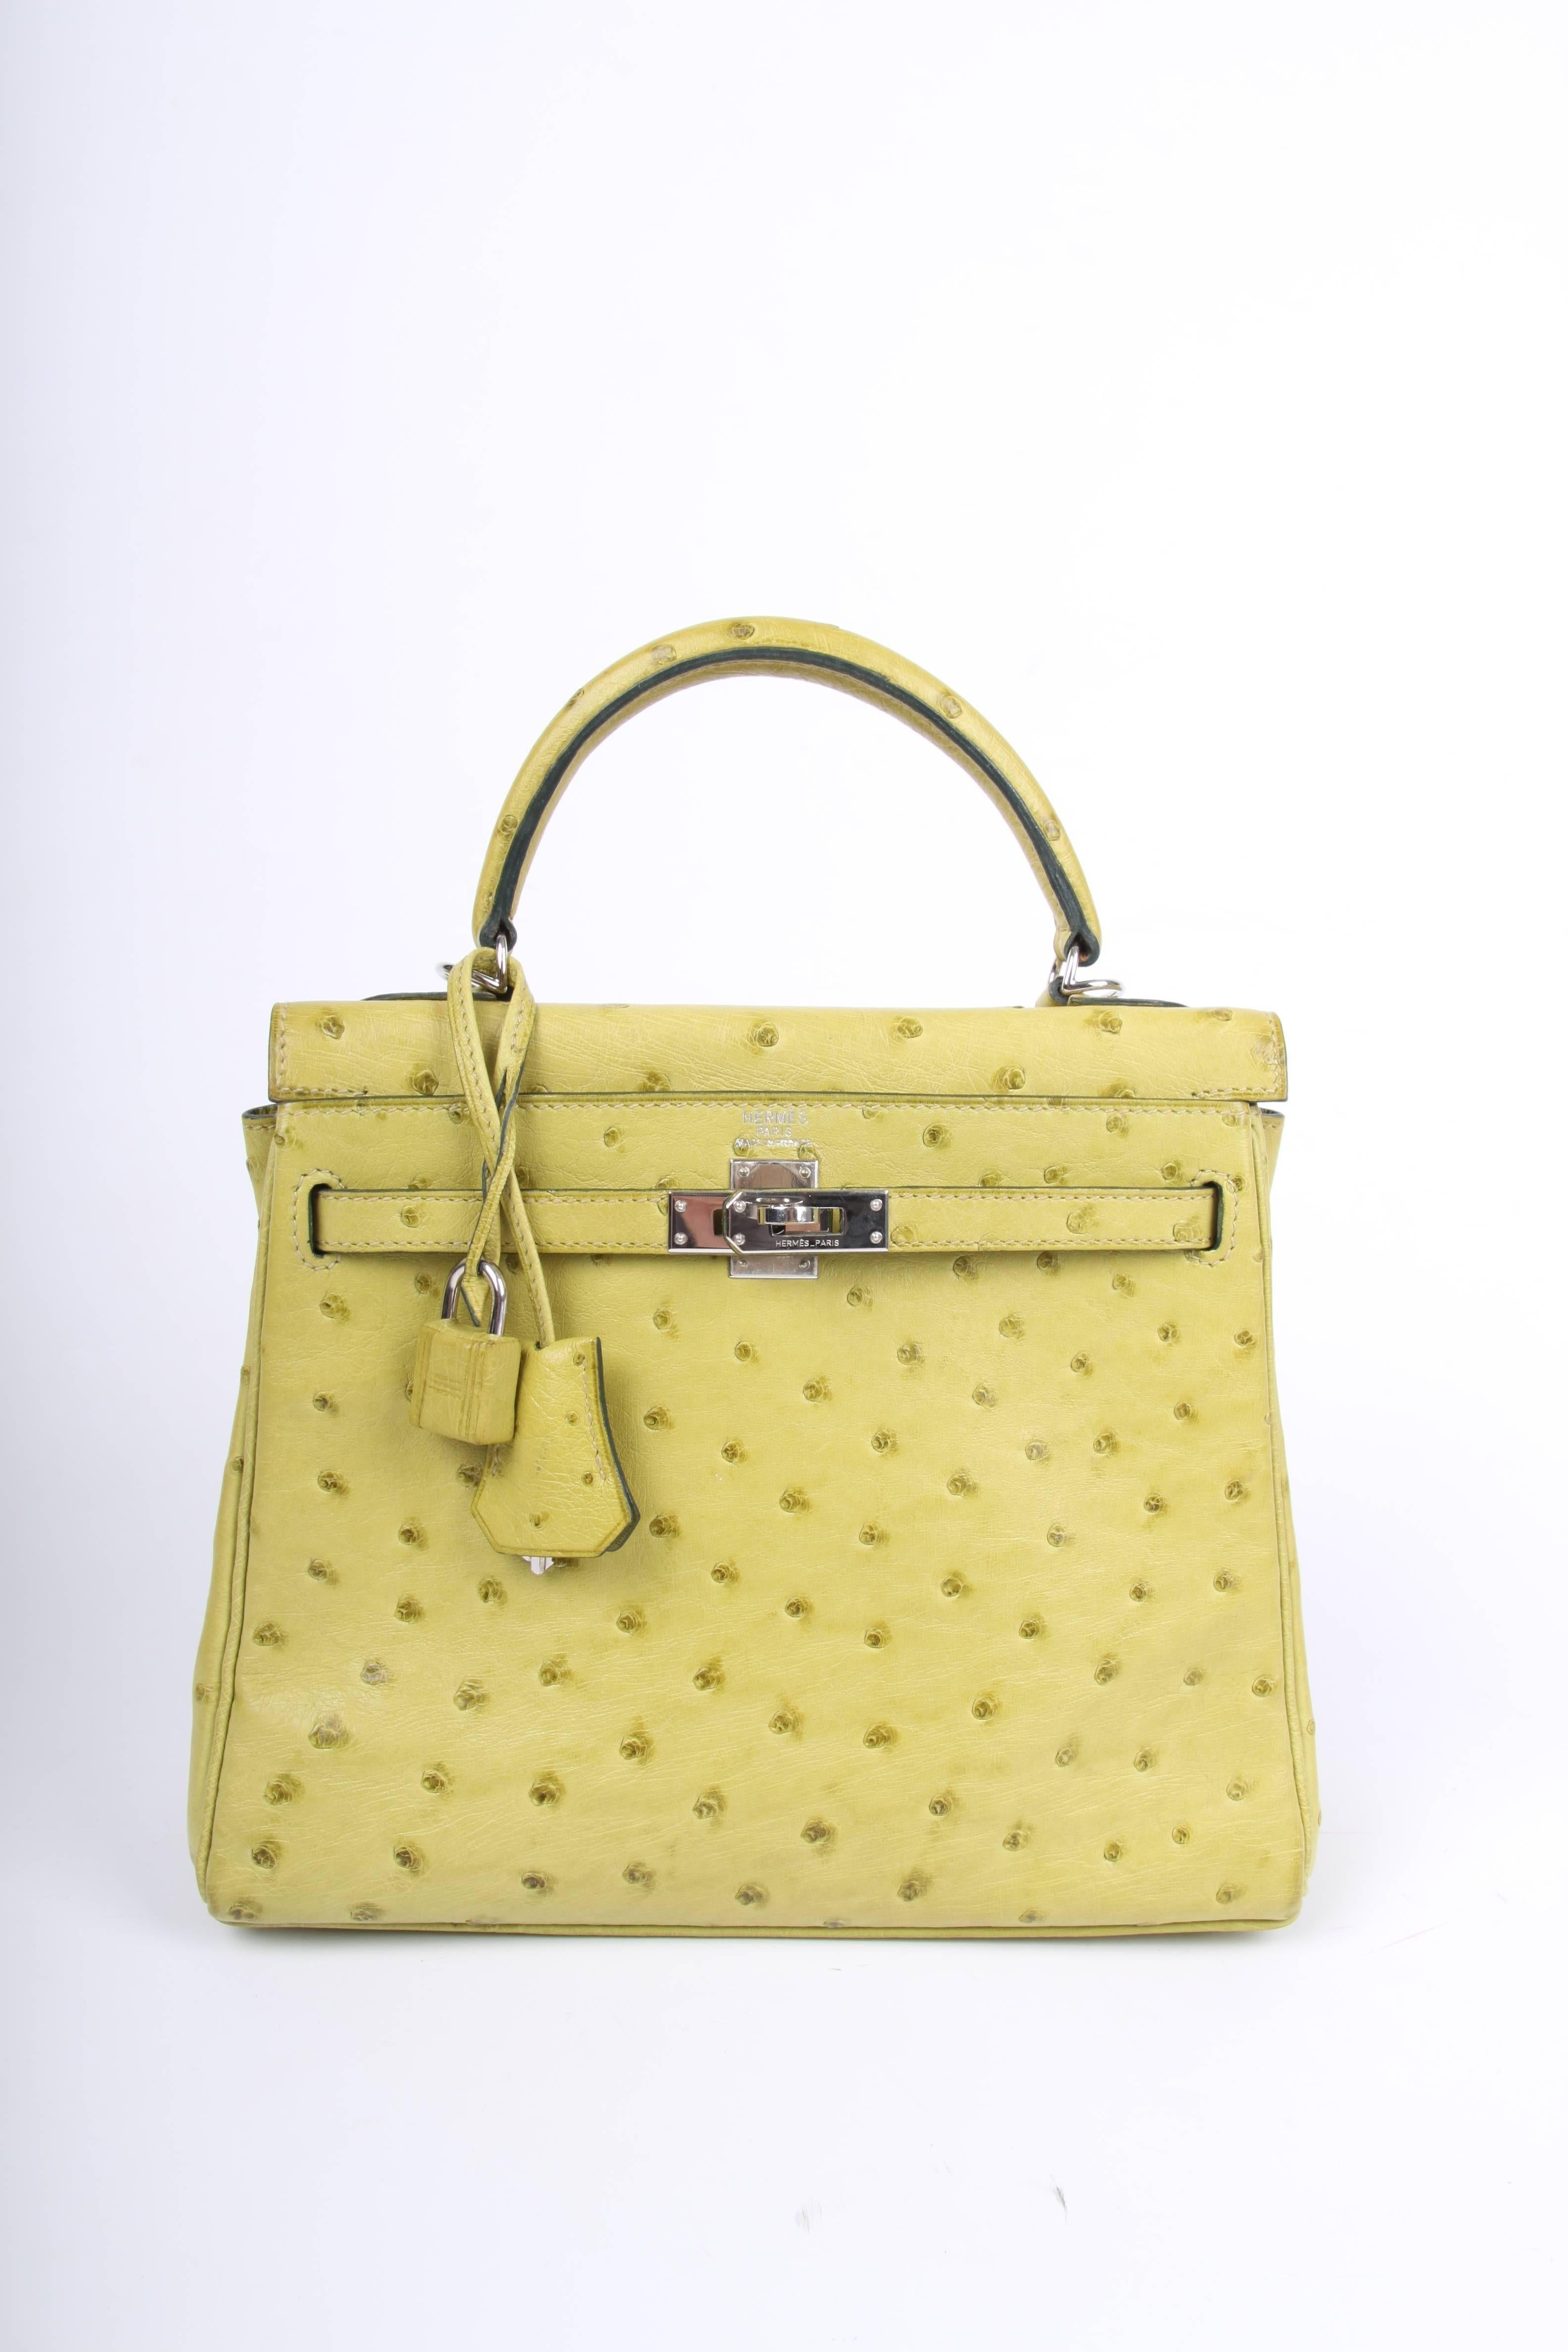 1df72de20d5 Hermes lime green 25 Ostrich Leather Kelly Bag at 1stdibs